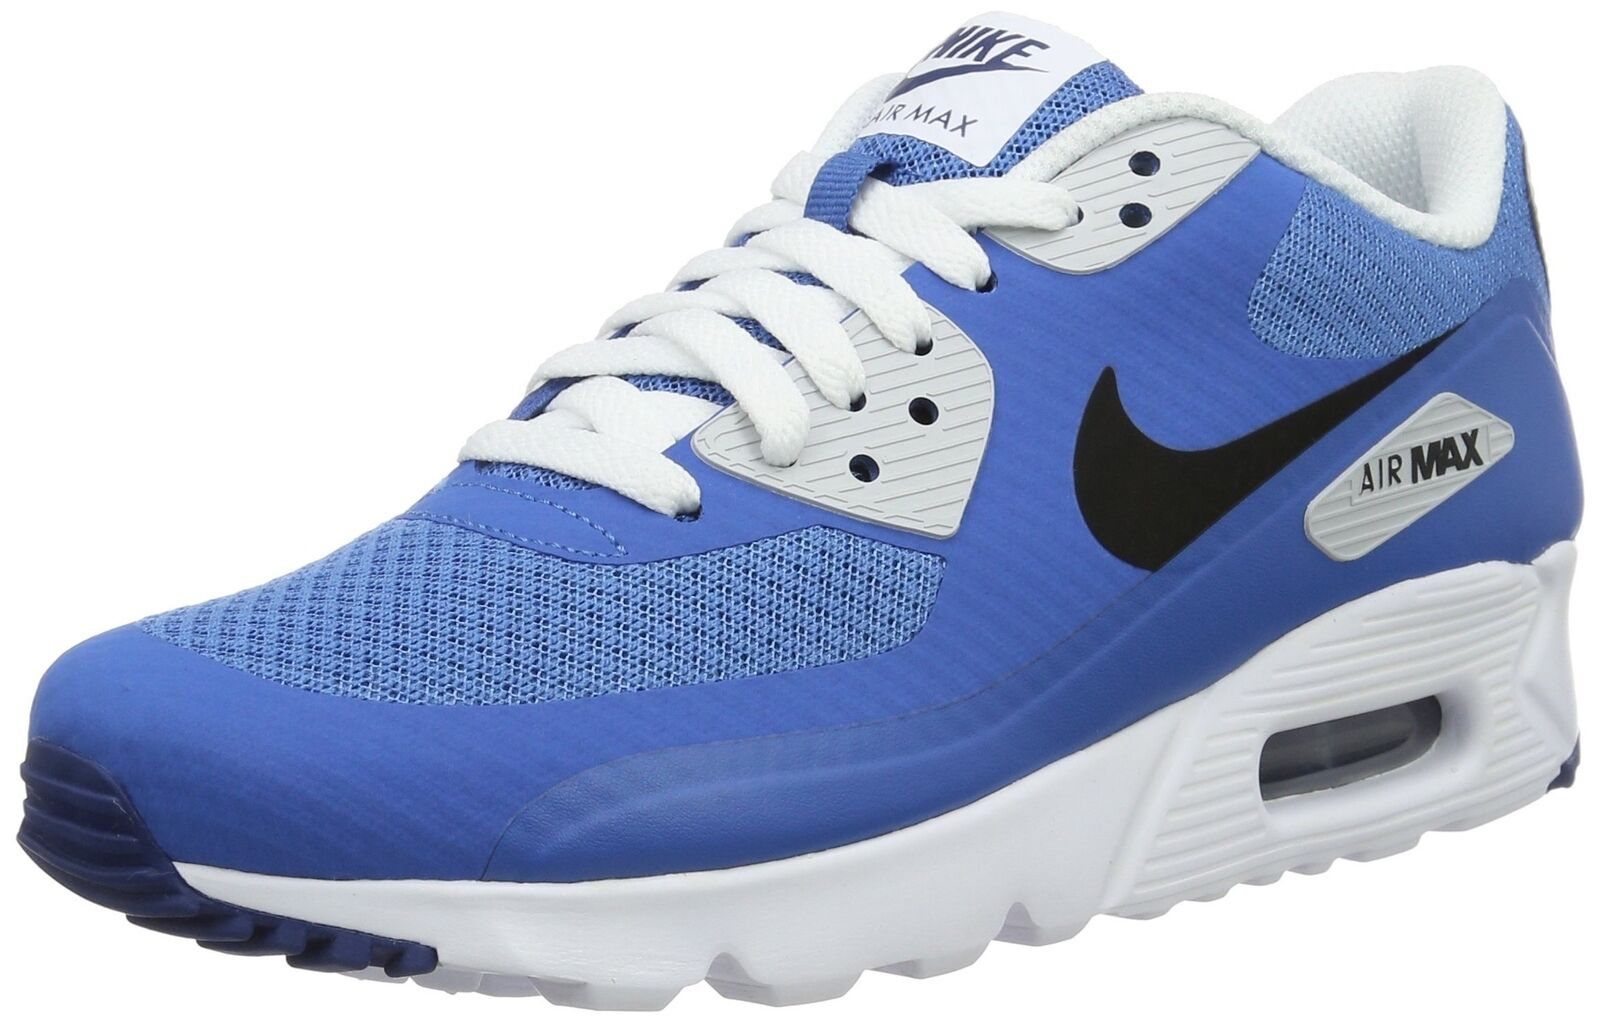 NIKE Men's Air Max 90 Ultra Essential, Star blueee BLK-CSTL BL-PR Pltnm, 7.5 M US